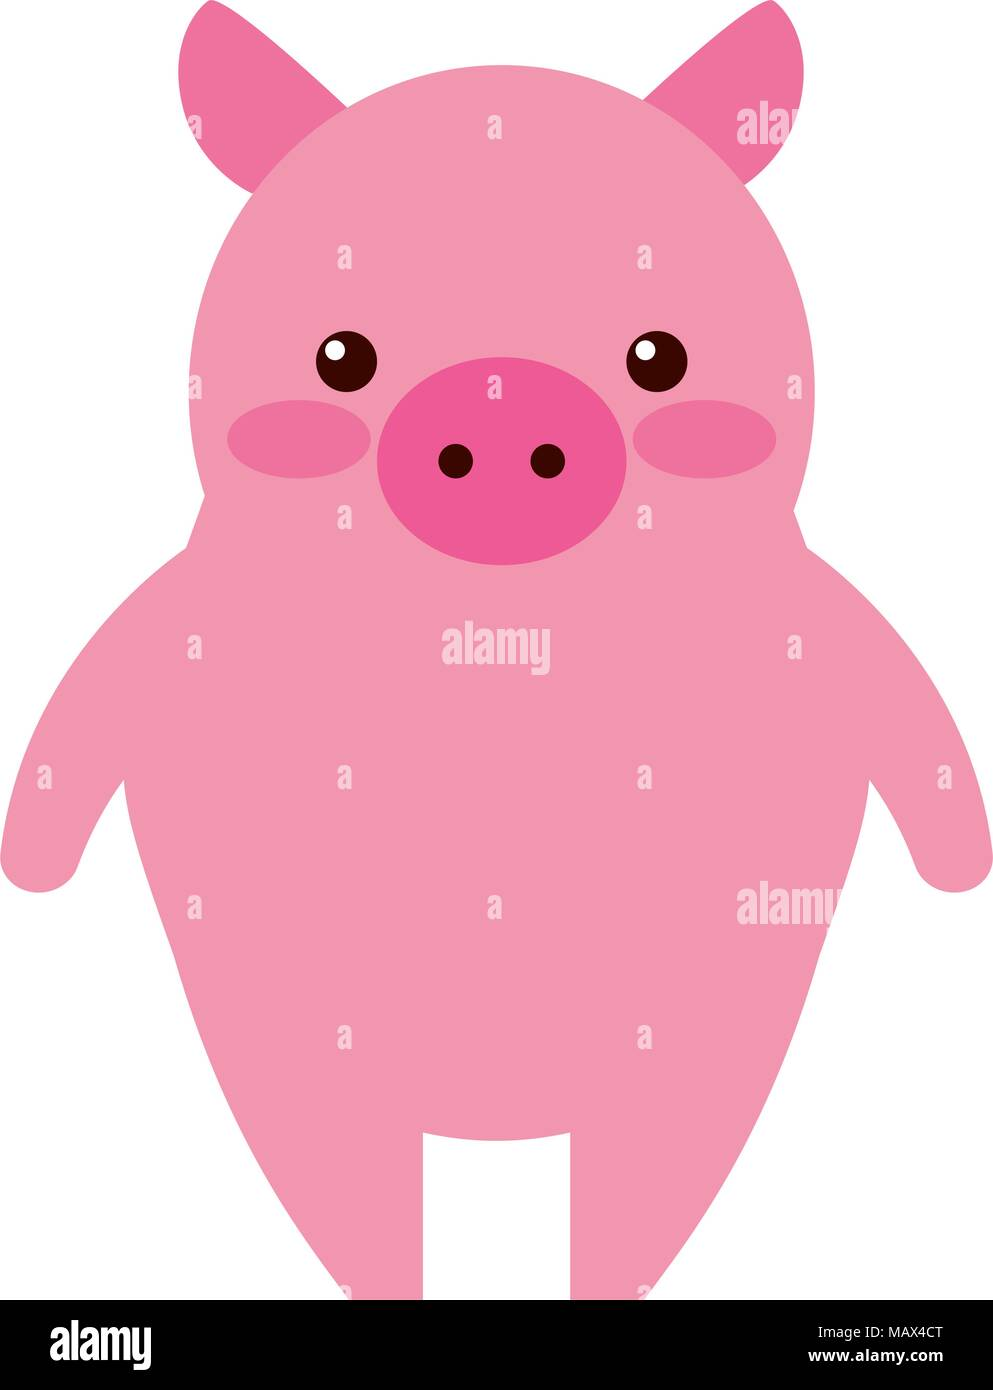 Illustration Little Pig Stock Photos & Illustration Little Pig Stock ...